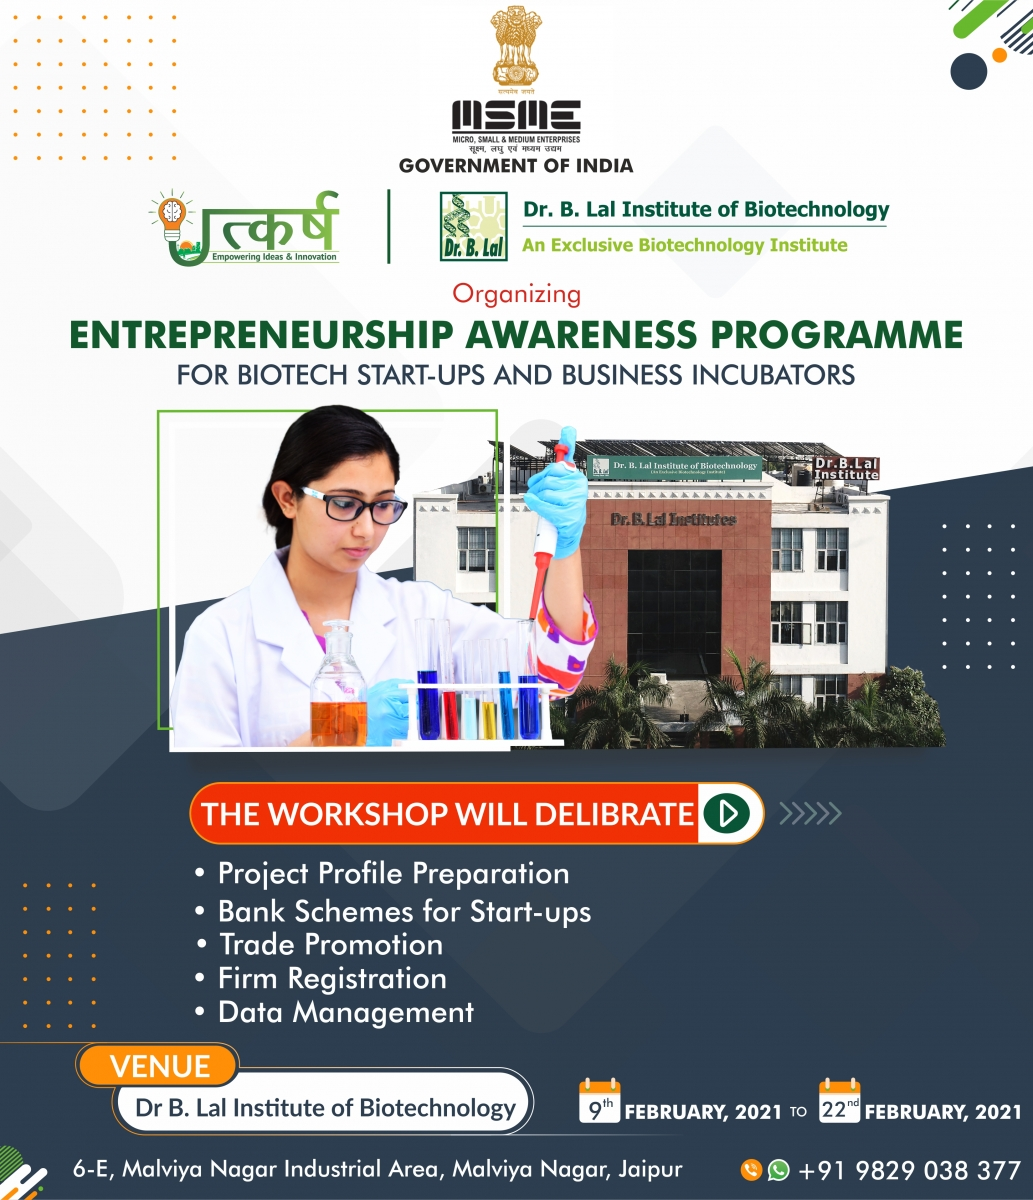 Entrepreneurship Awareness Programme for Biotech Start-ups and Business Incubators